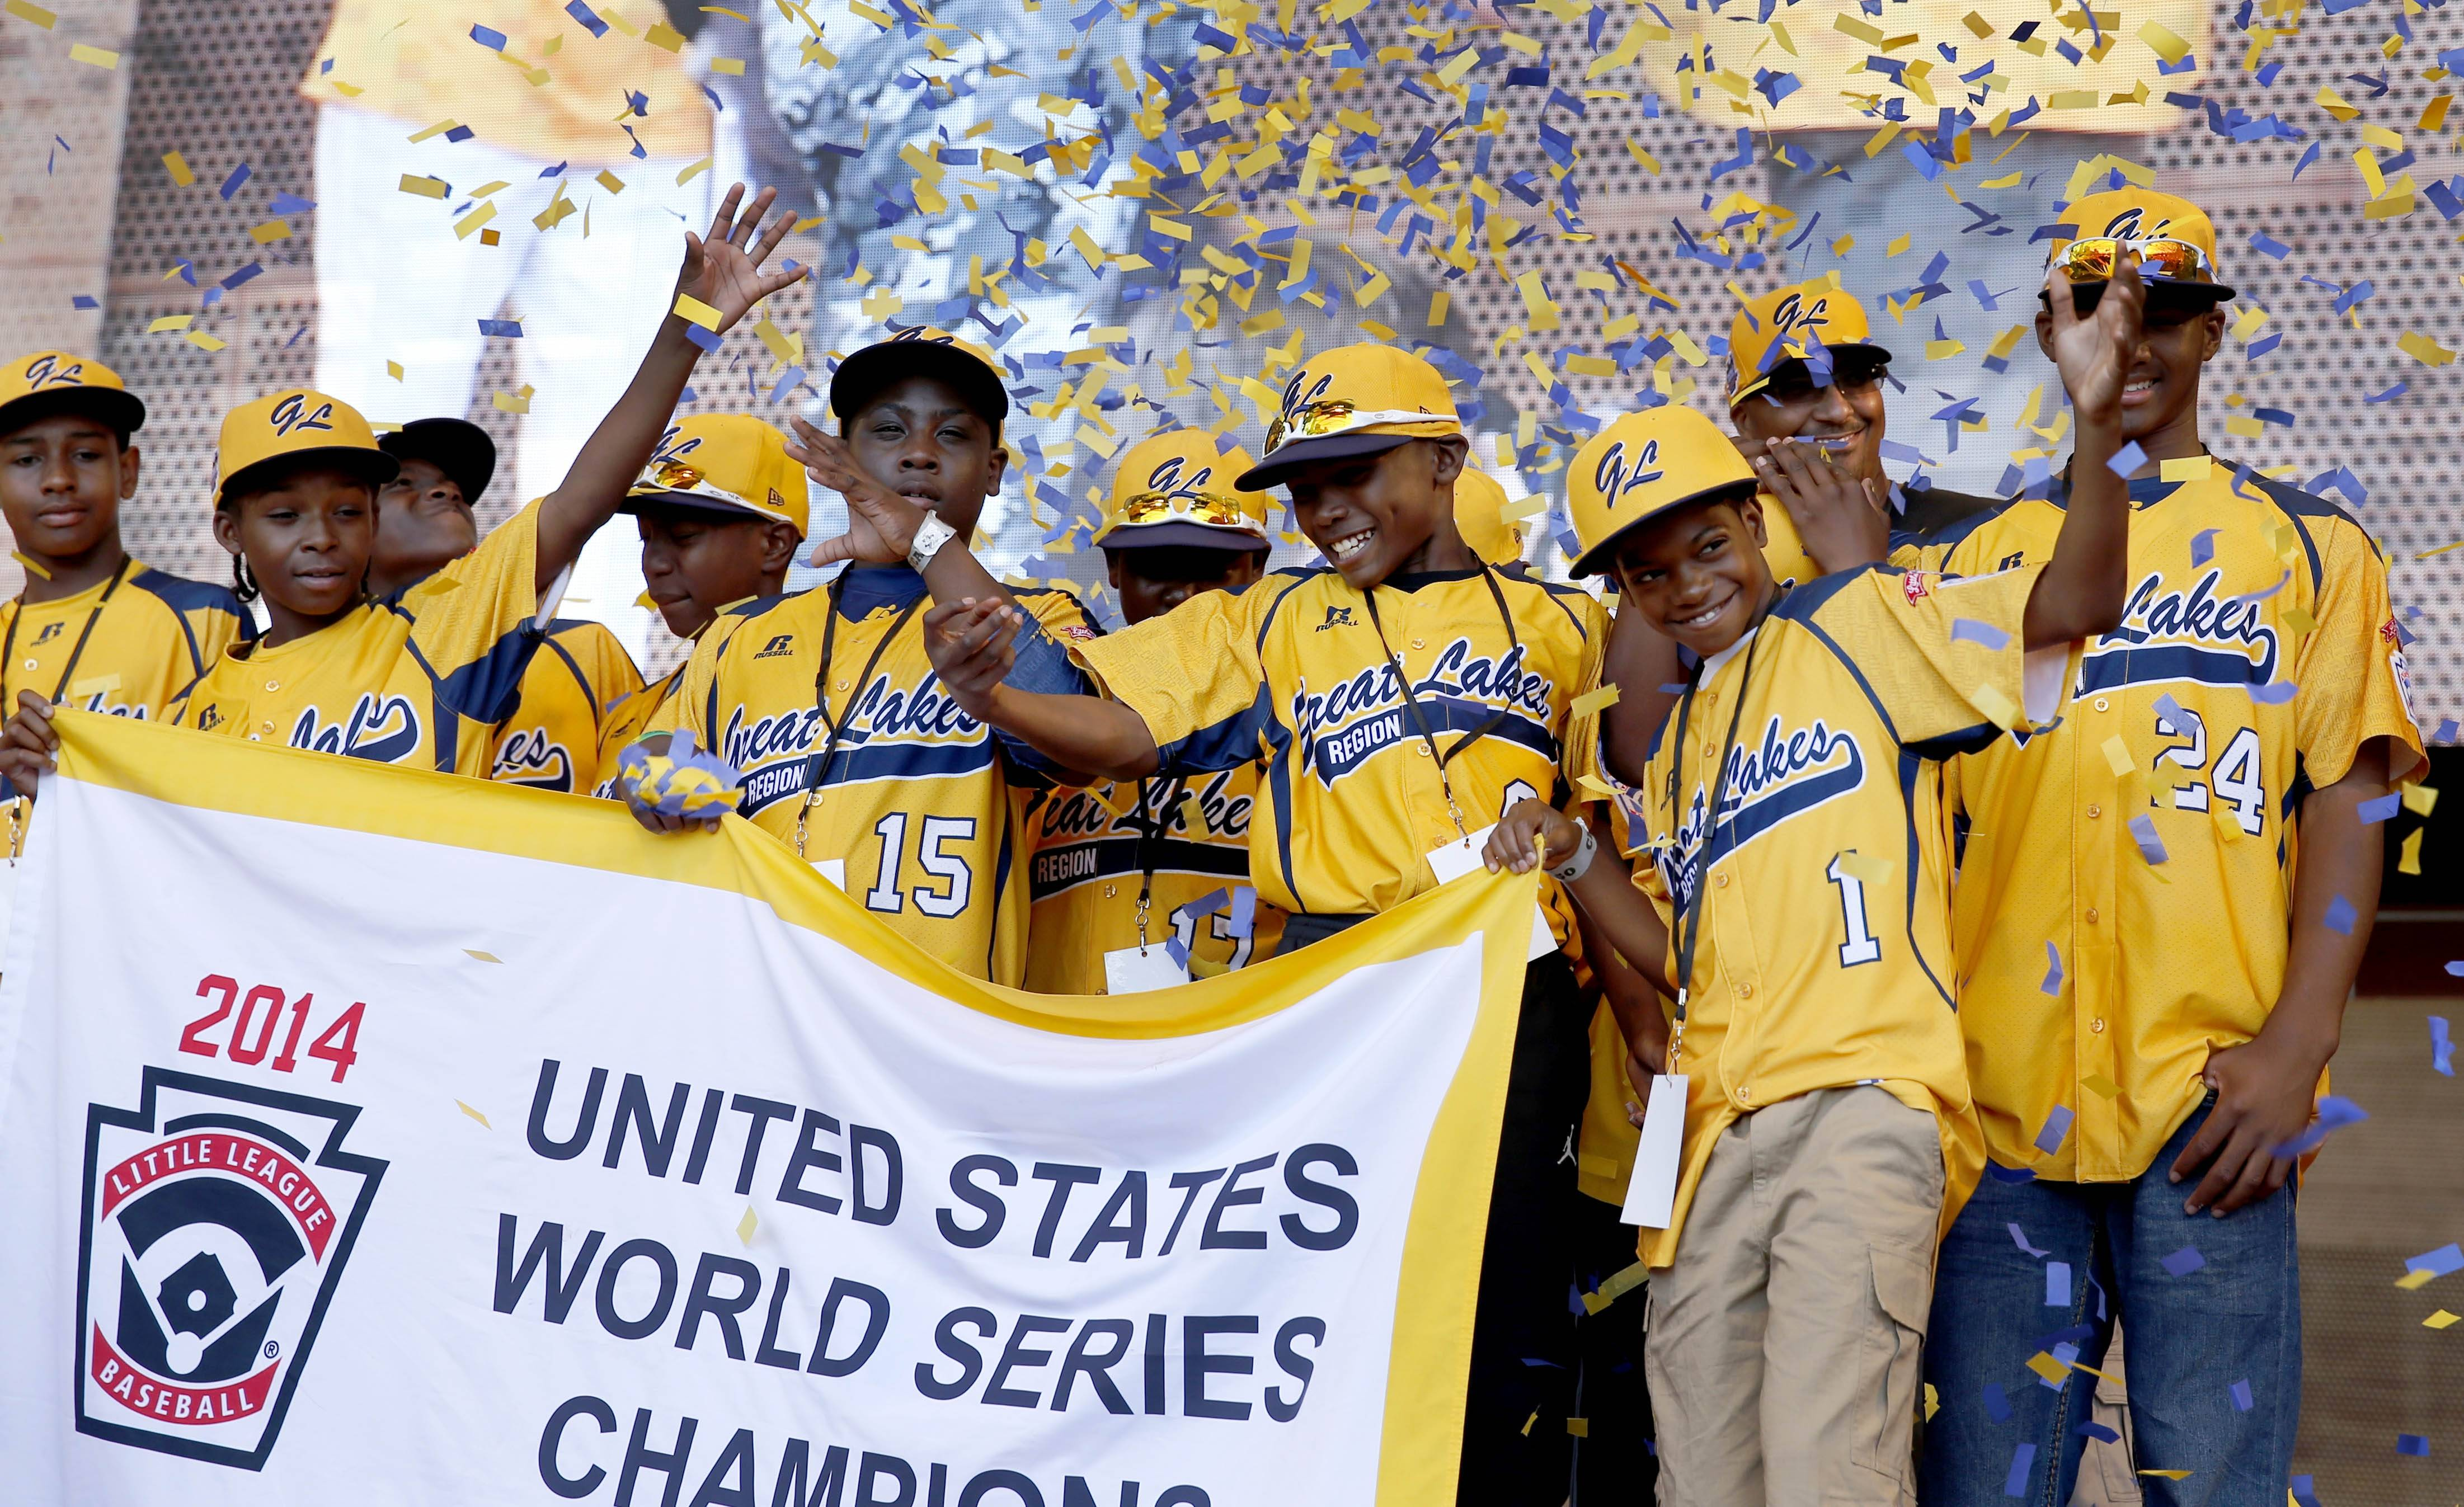 Members of the Jackie Robinson West All Stars Little League Baseball team participate in a rally celebrating the team's U.S. Little League Championship Wednesday in Chicago.